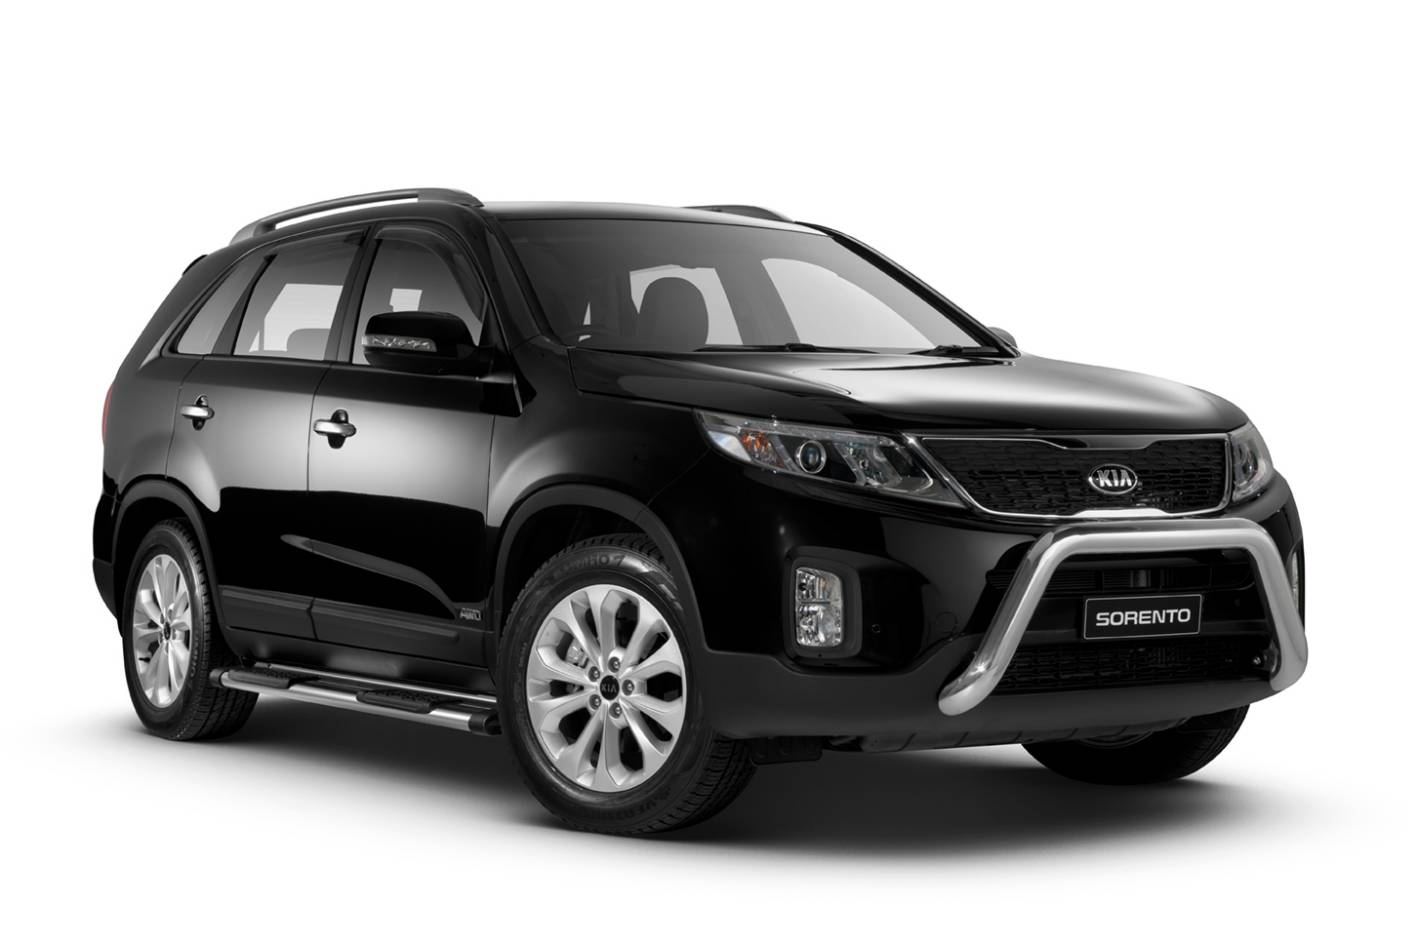 Mercedes Suv Models >> News - Kia Launches Value-Loaded Family Pack For Sorento SUV